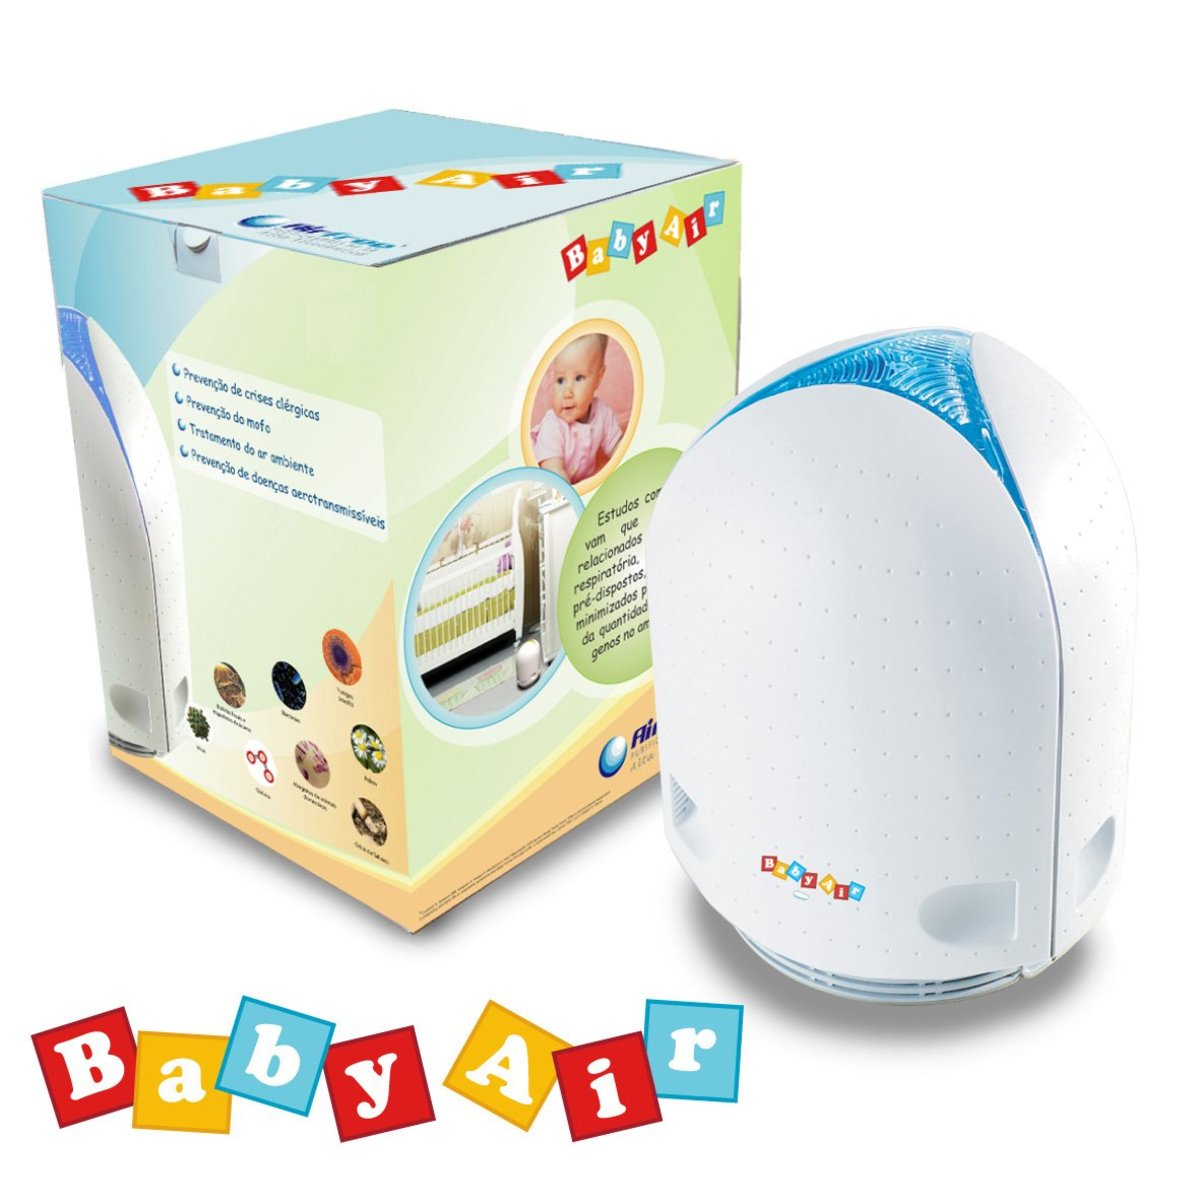 Airfree BABYAIR  Air purifier